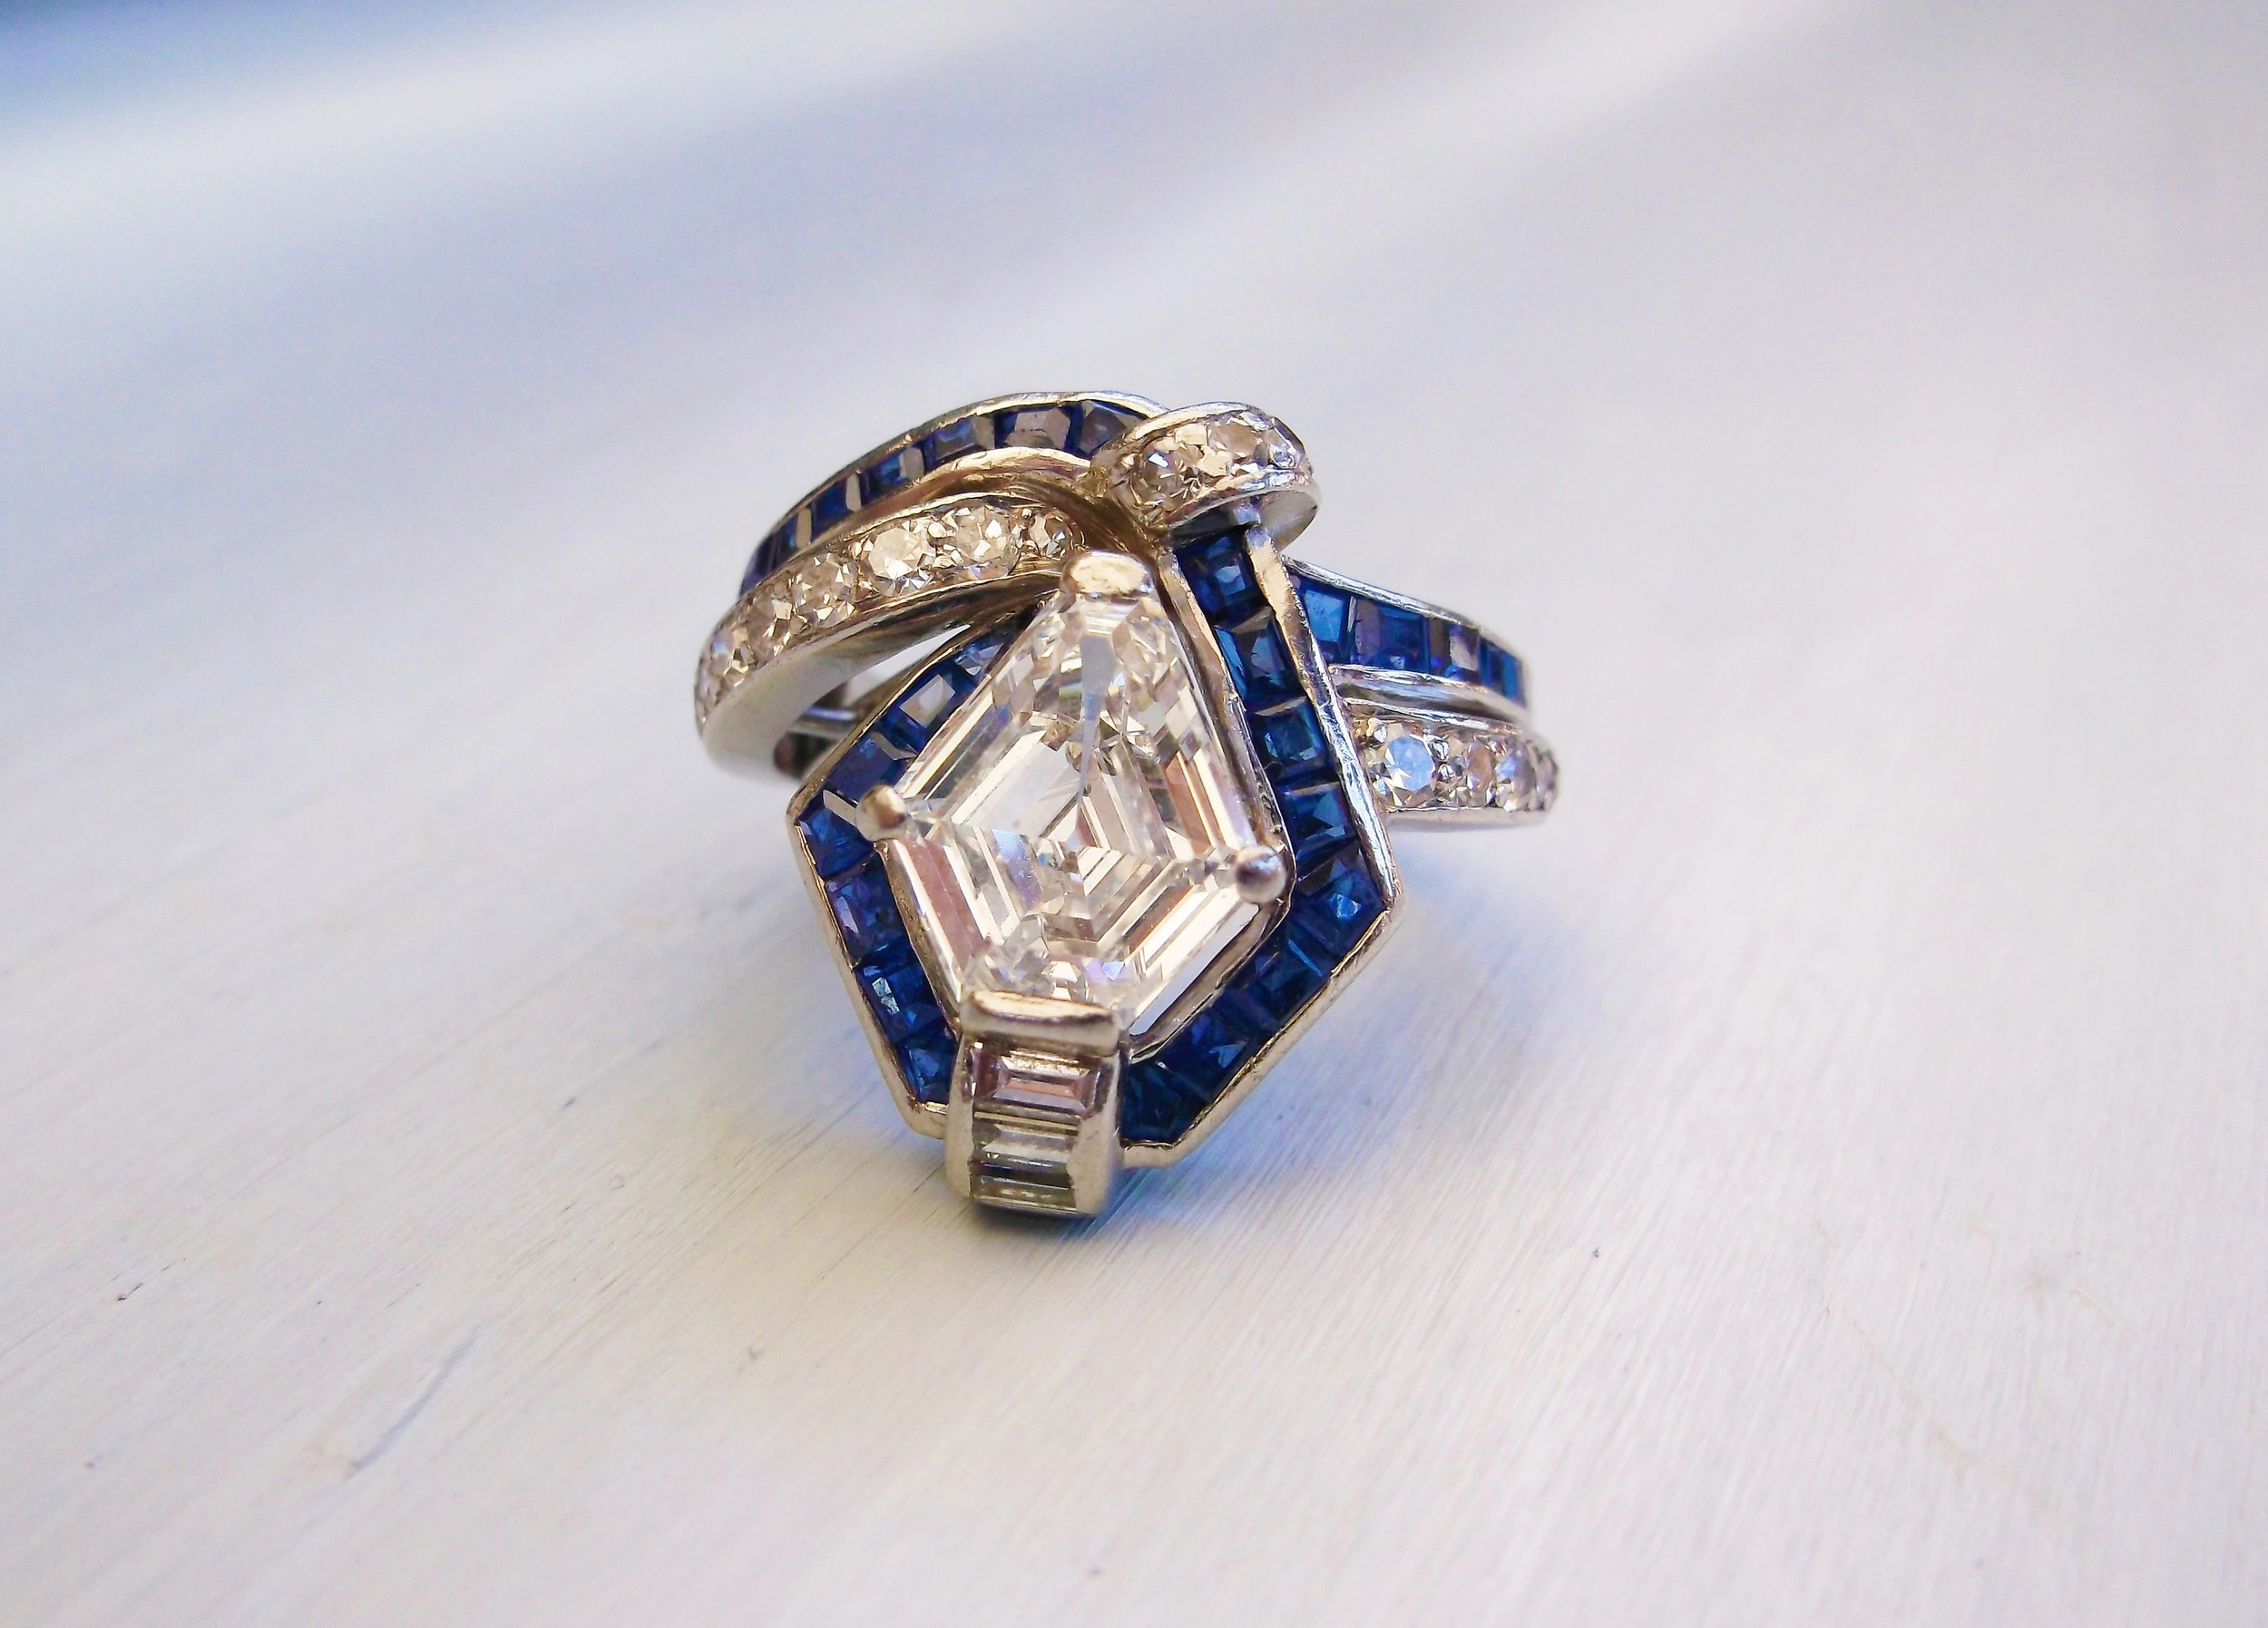 SOLD - Exquisite 1920's diamond, sapphire and platinum ring that features a gorgeous 2.07 carat kite shaped diamond!